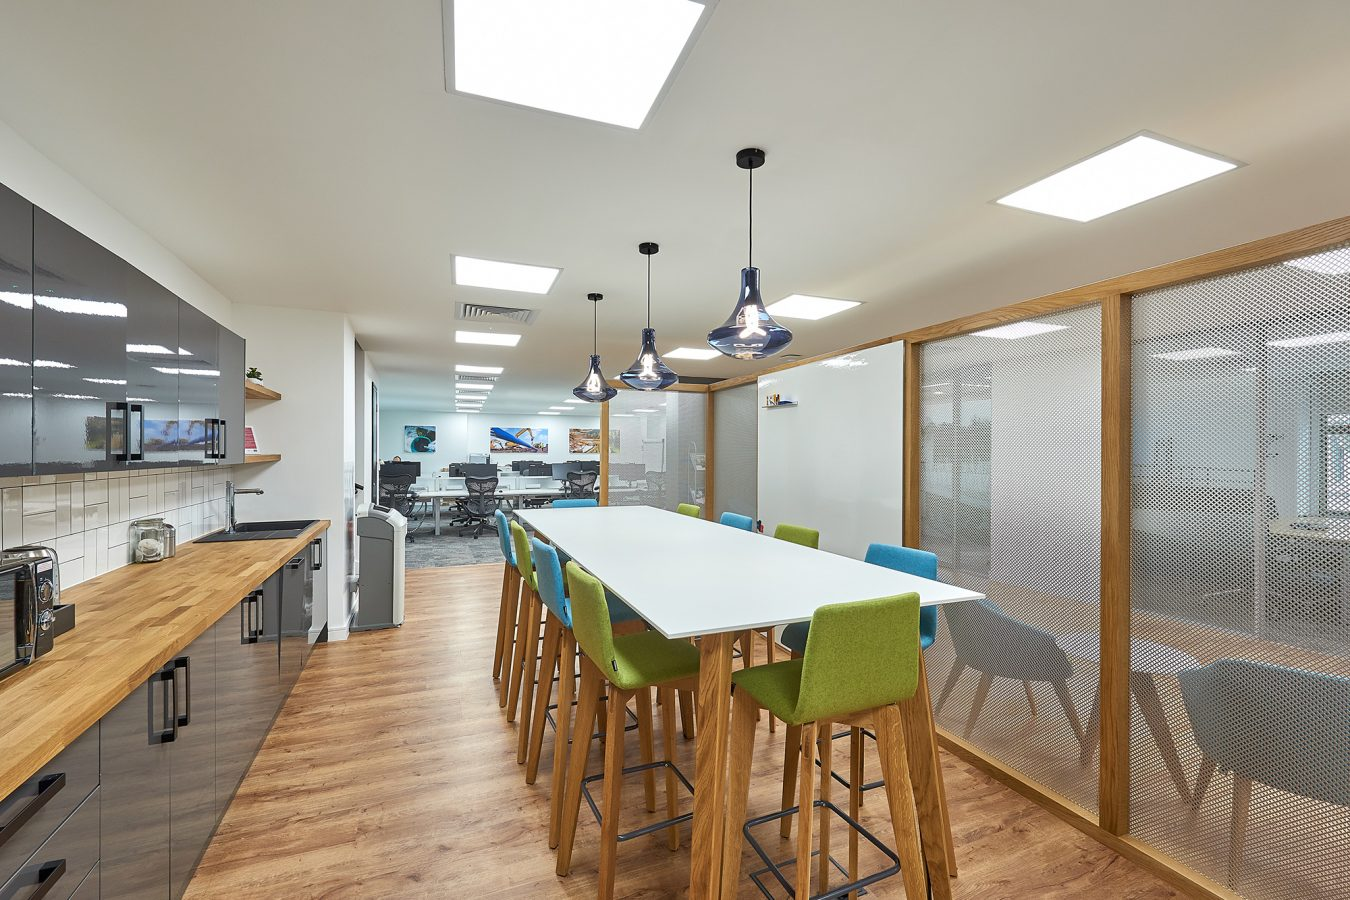 Modern tea point and kitchen fit-out for office refurbishment near London